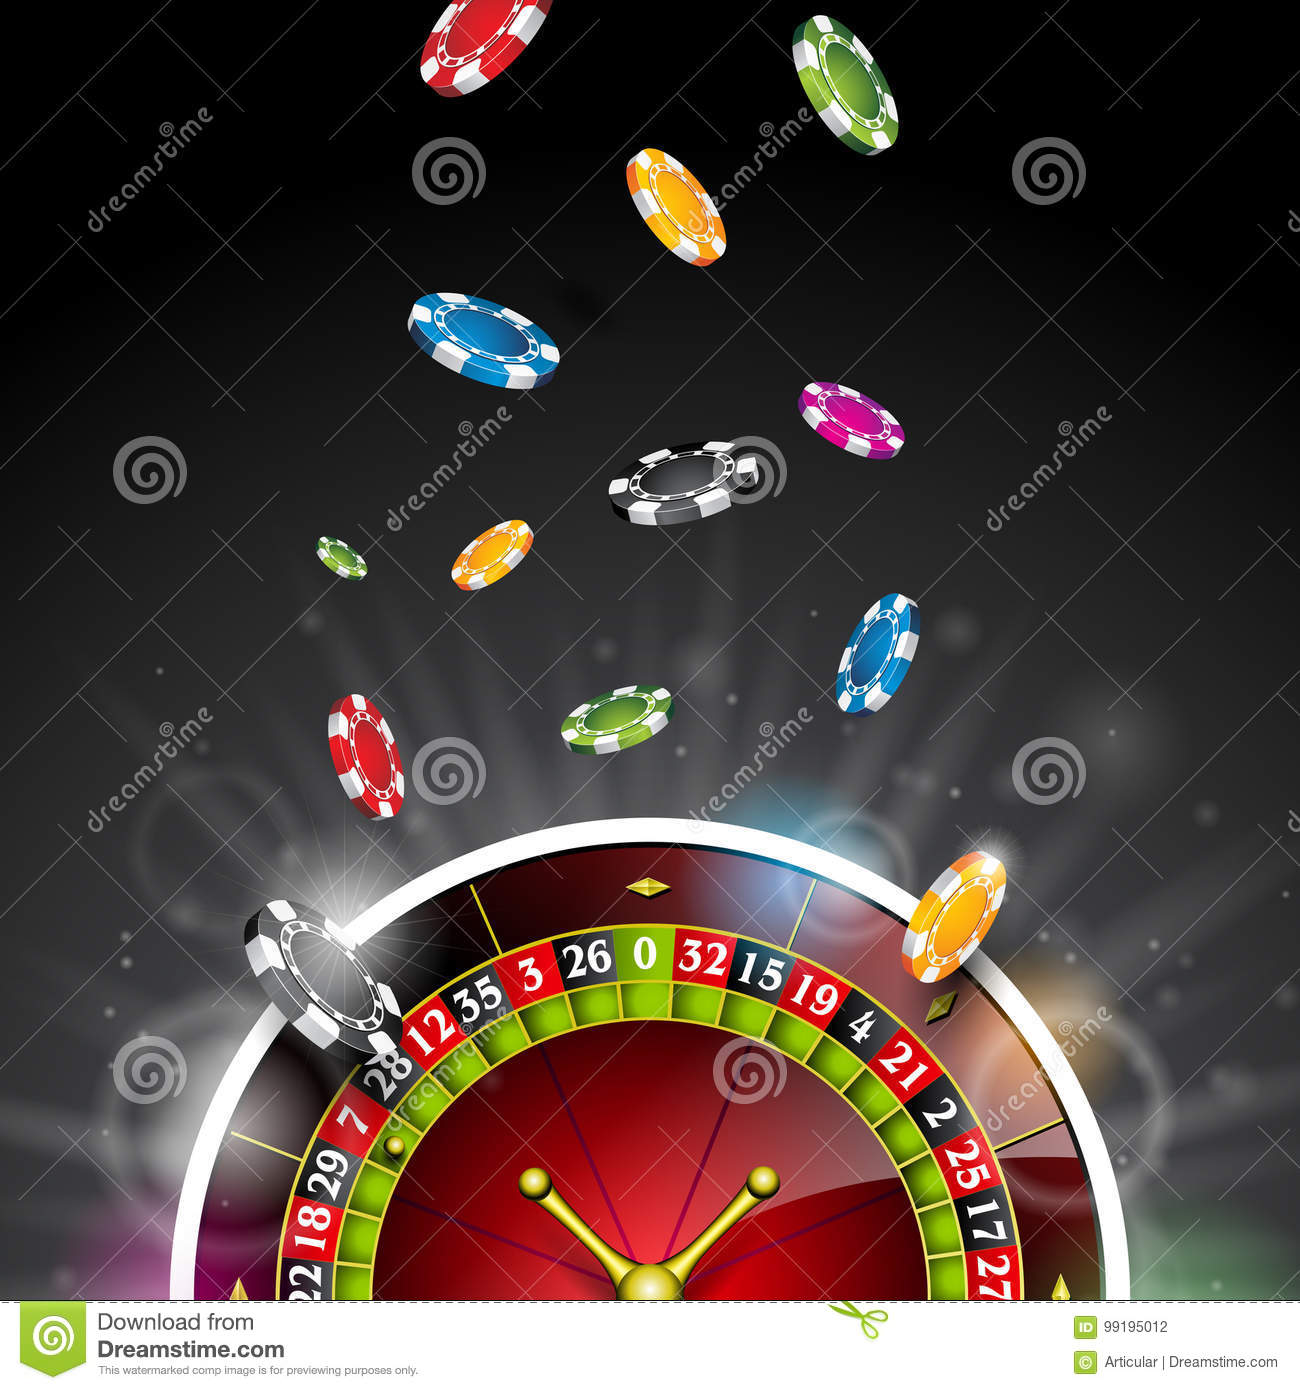 Vector illustration on a casino theme with color playing chips and roulette wheel on black background. Gambling design elements.